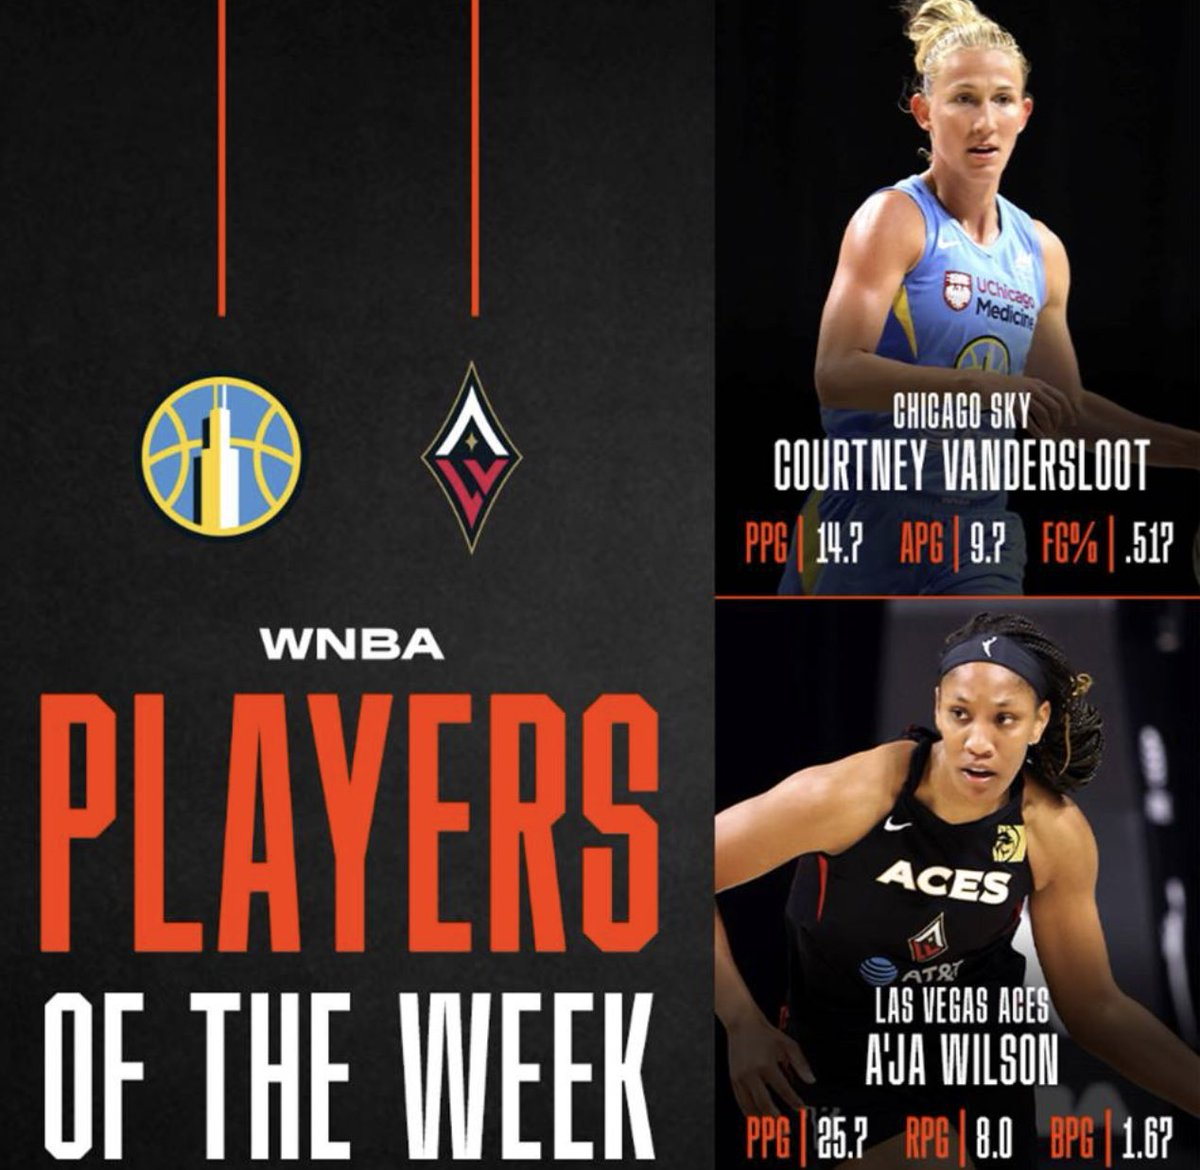 Watch out for these Women in the Wubble. @Sloot22 @_ajawilson22 @WNBA Players of the week. https://t.co/F8sWrYD22K